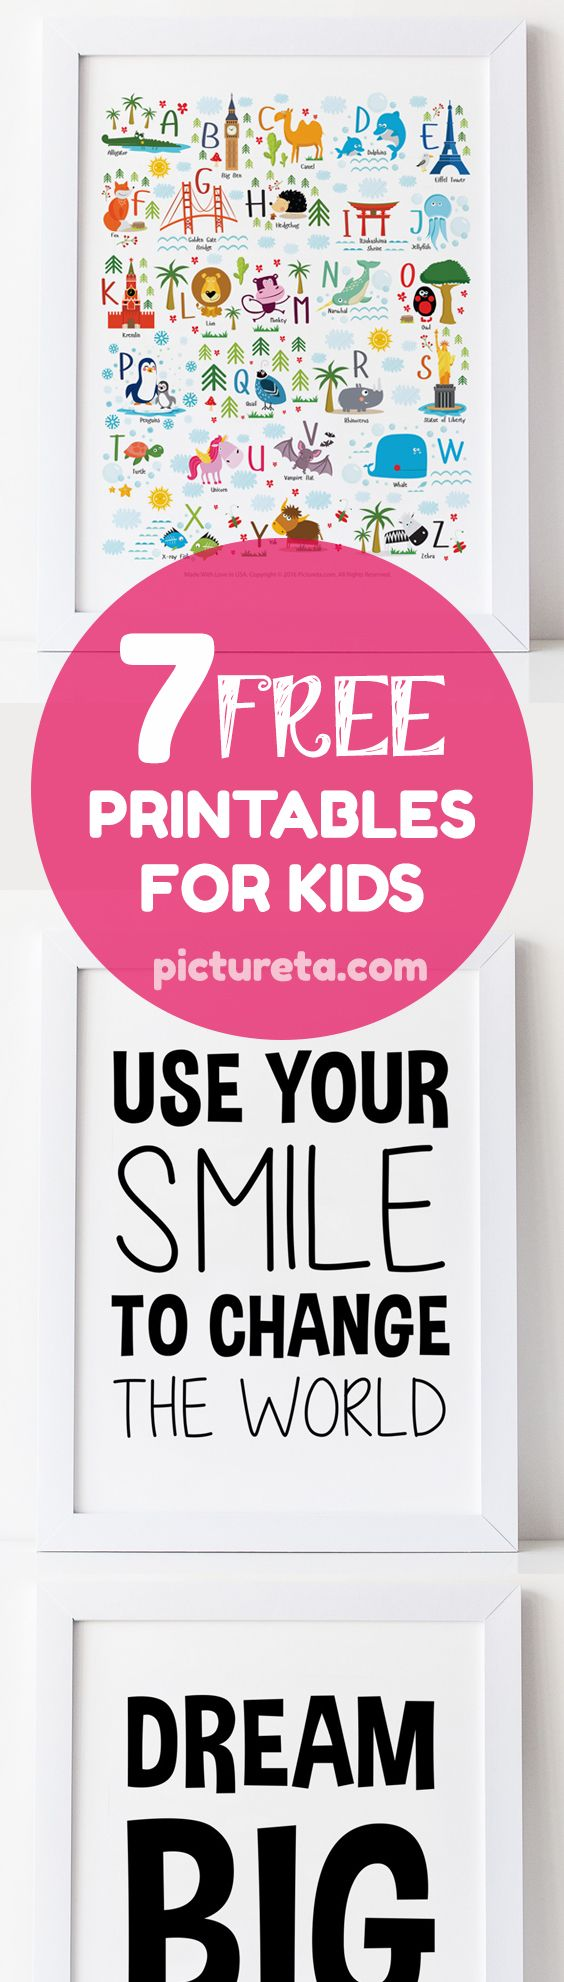 Printable Alphabet Every Child Should Have   Playroom   Playroom